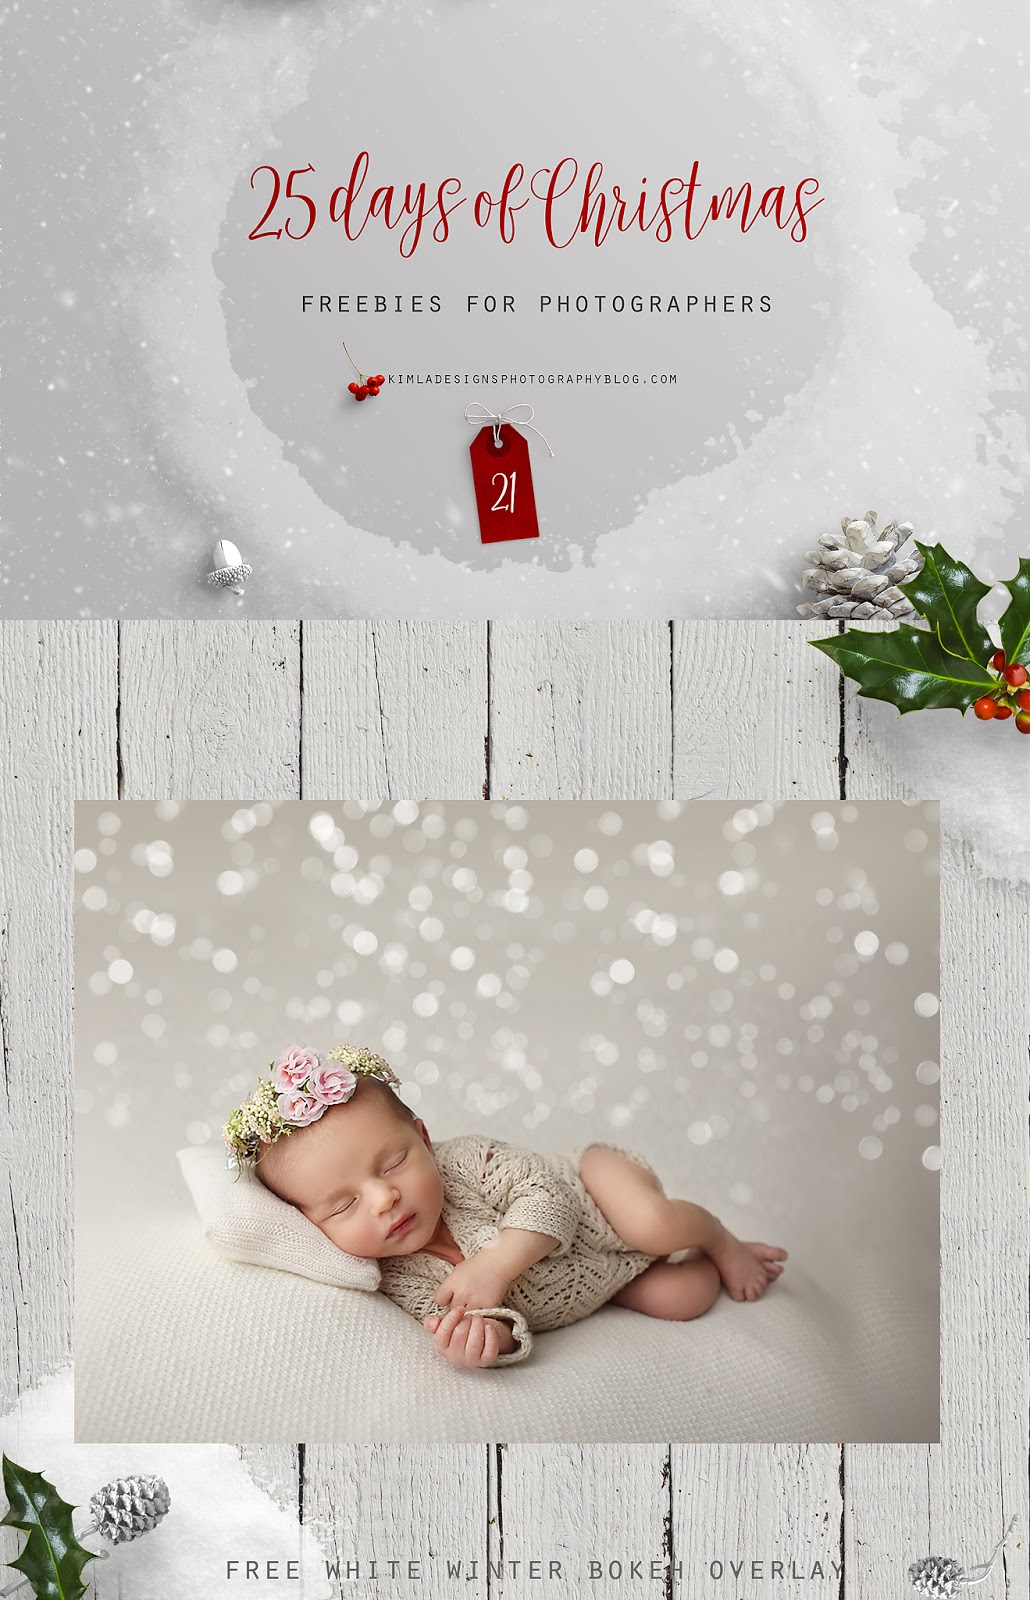 25 Days of Christmas Freebies for Photographers Day 21st